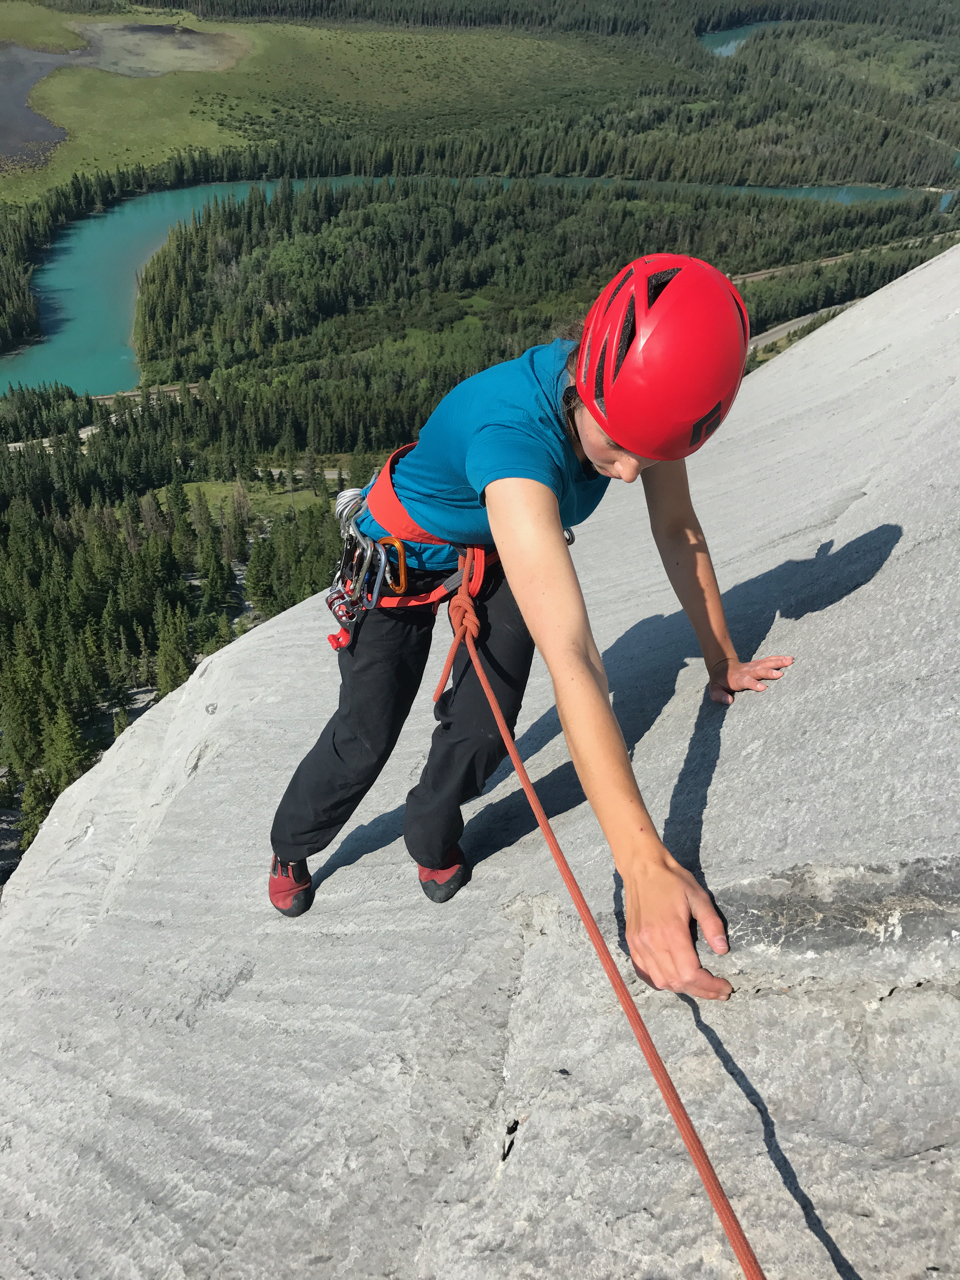 Saige on Aftonroe, an ultra-classic 5.7 near Banff